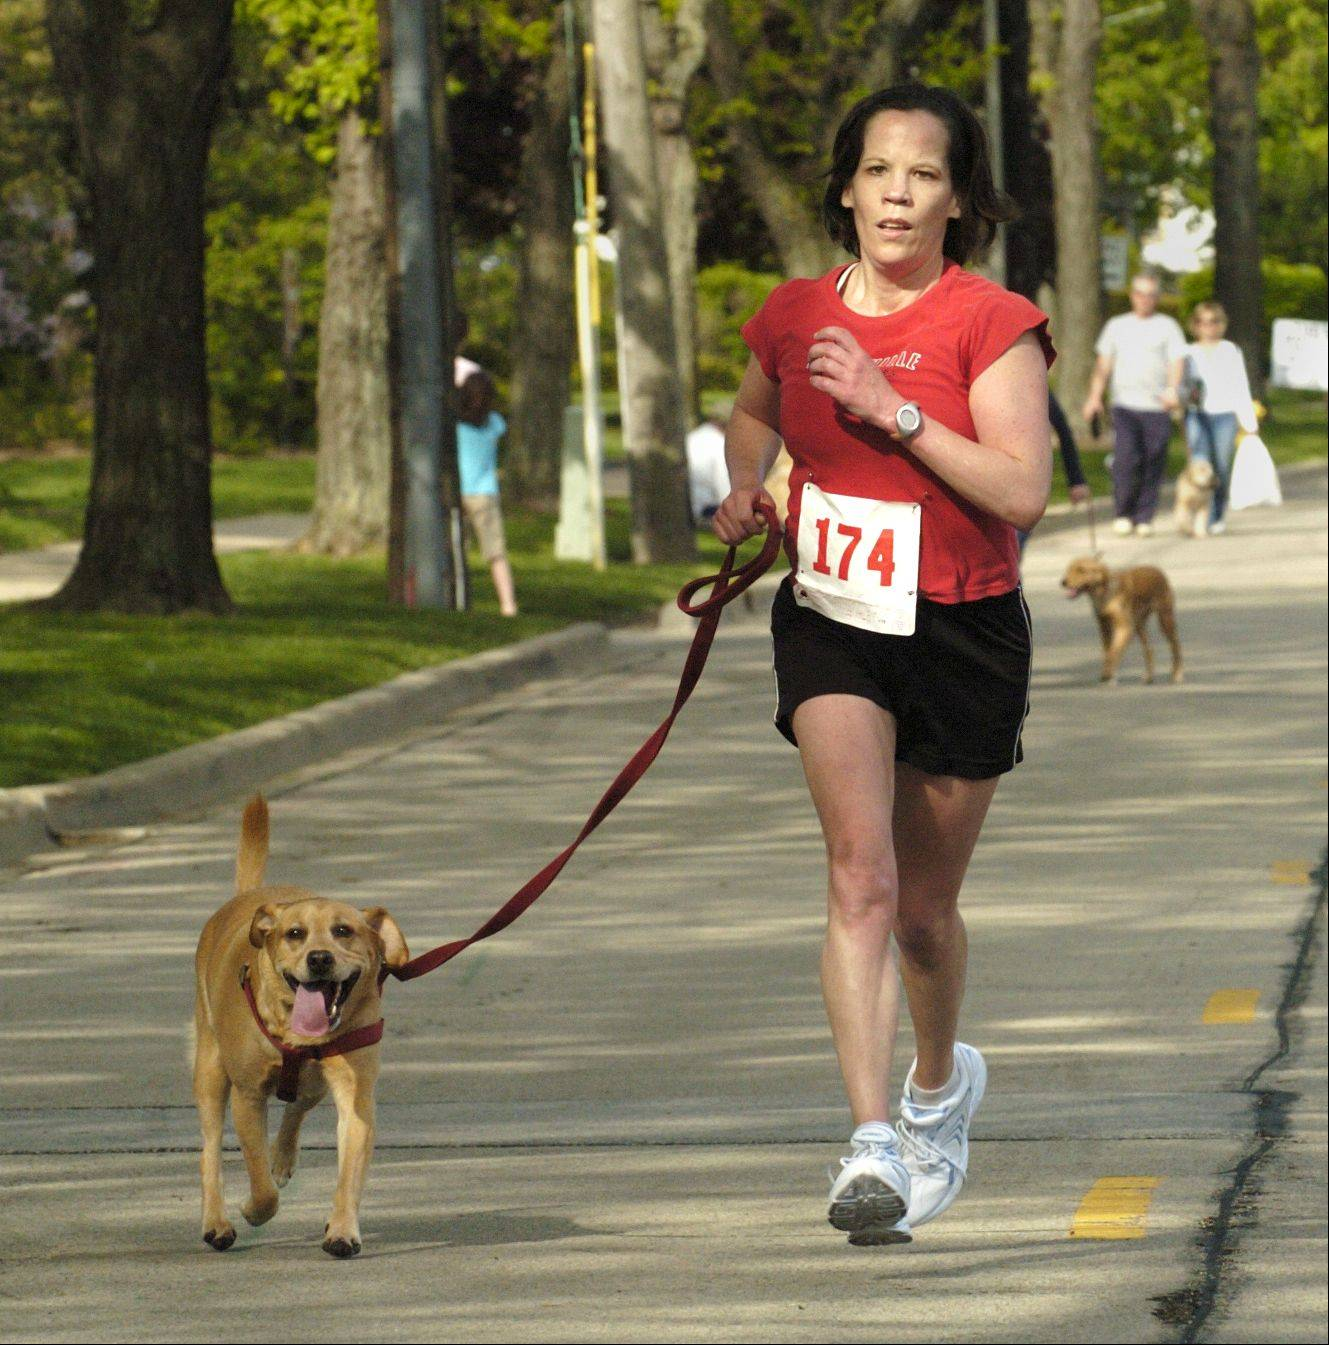 The eighth annual Lilac Time Mutt Strut 5K and 1-mile Puppy Path will step off at 8 a.m. Saturday, May 18, to be followed by a pancake breakfast in Lilacia Park.